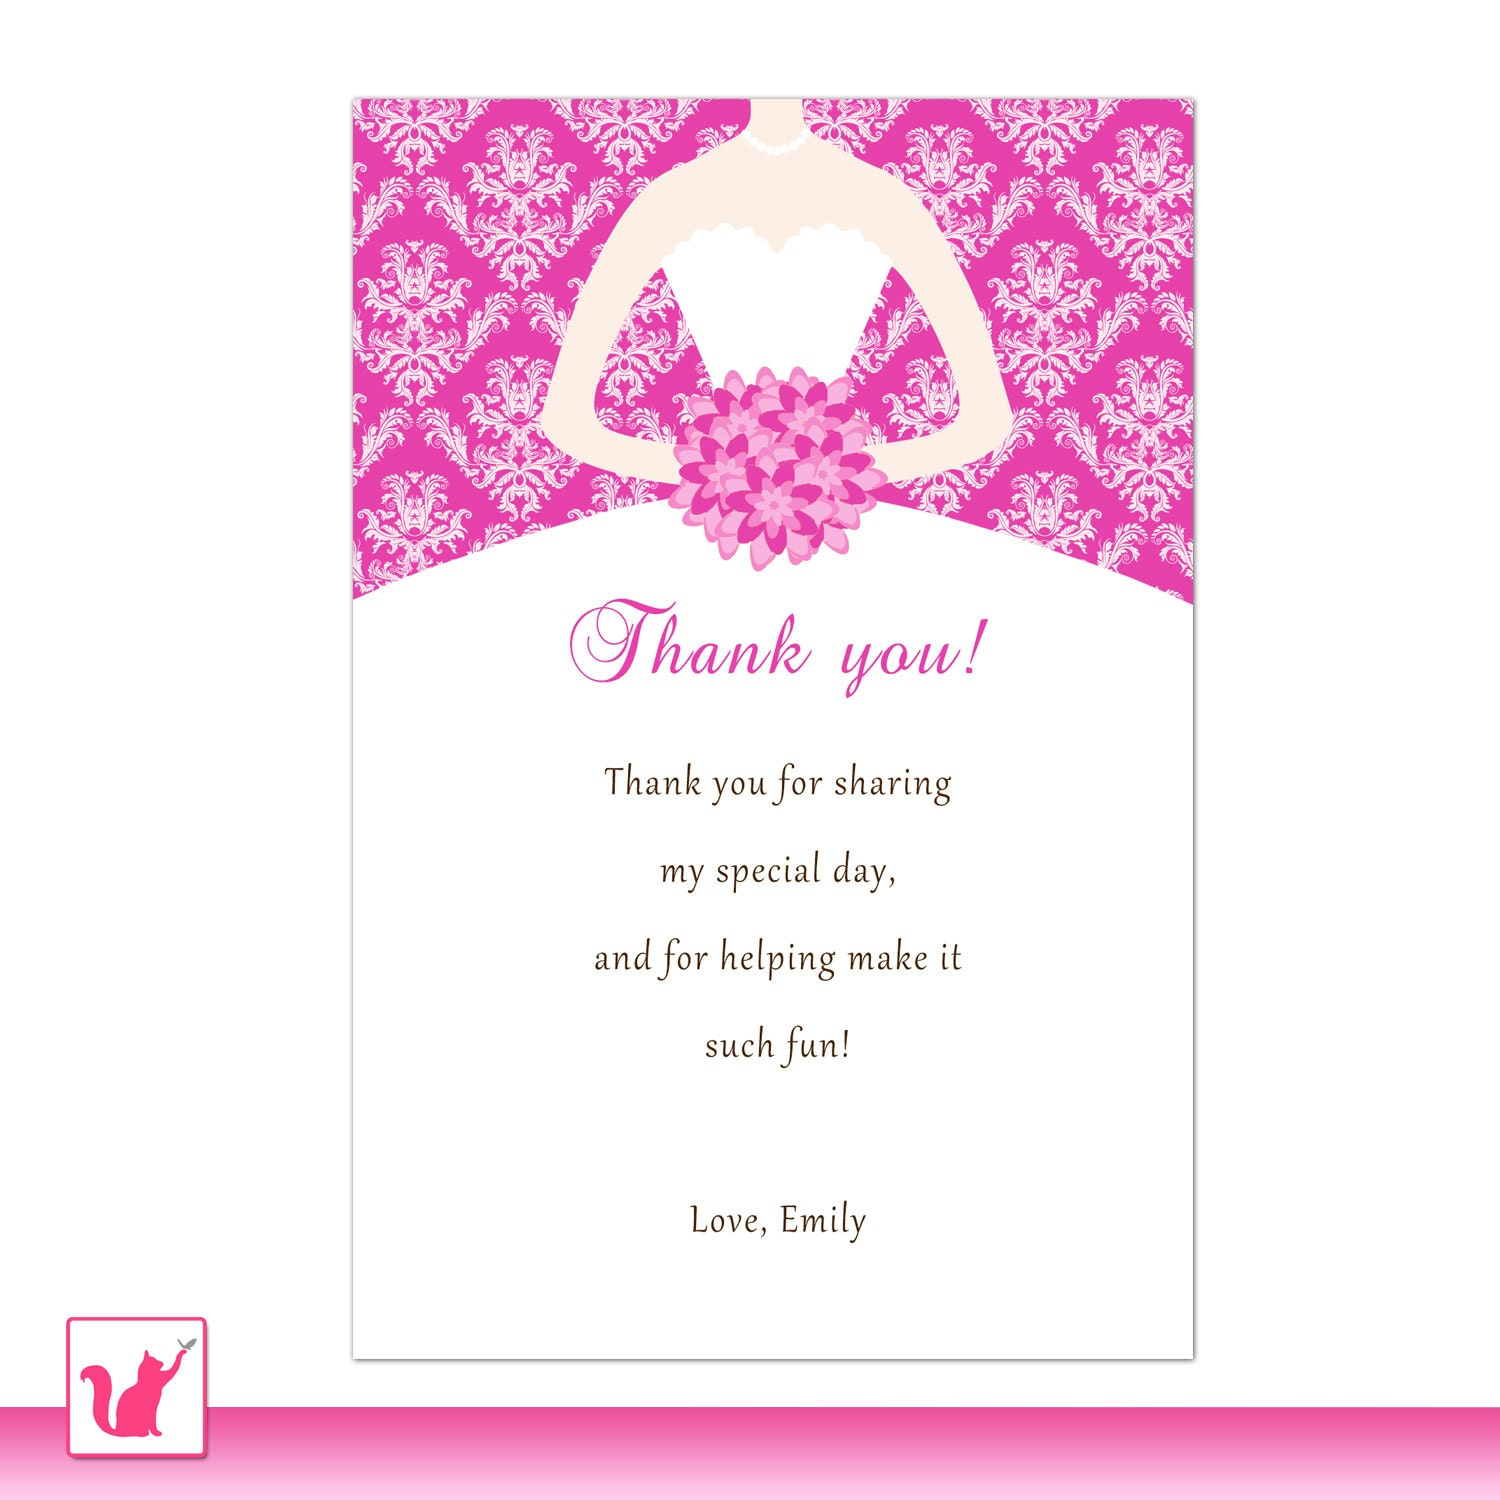 Thank You Notes For Bridal Shower Gifts Wording : Printable Personalized Fuchsia Hot Pink Damask Thank by pinkthecat